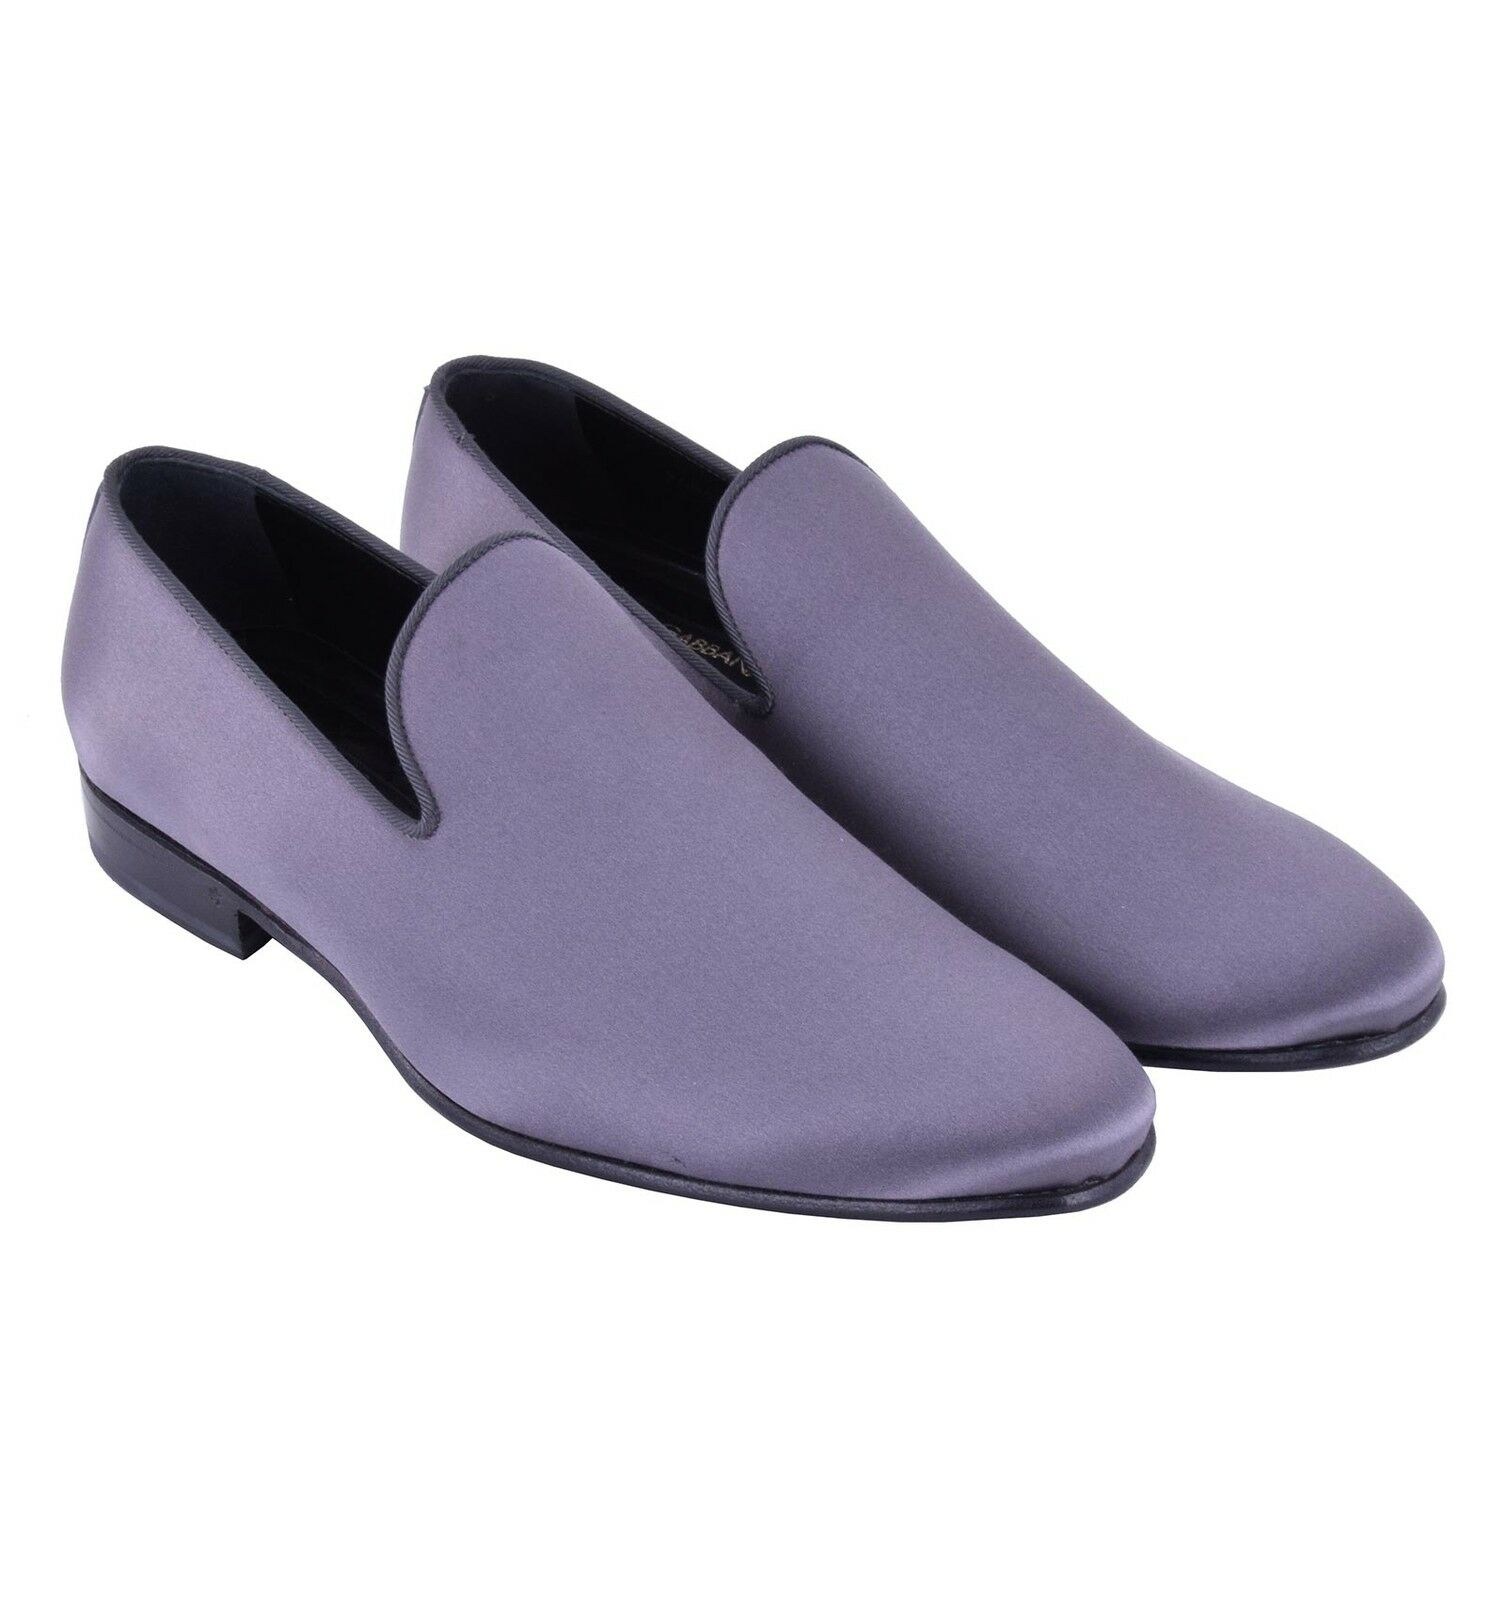 530c961993d4 DOLCE   GABBANA Satin Loafer Slip-On Slip-On Slip-On Shoes VENEZIA Gray  Silk Moccasins 05163 eb3905